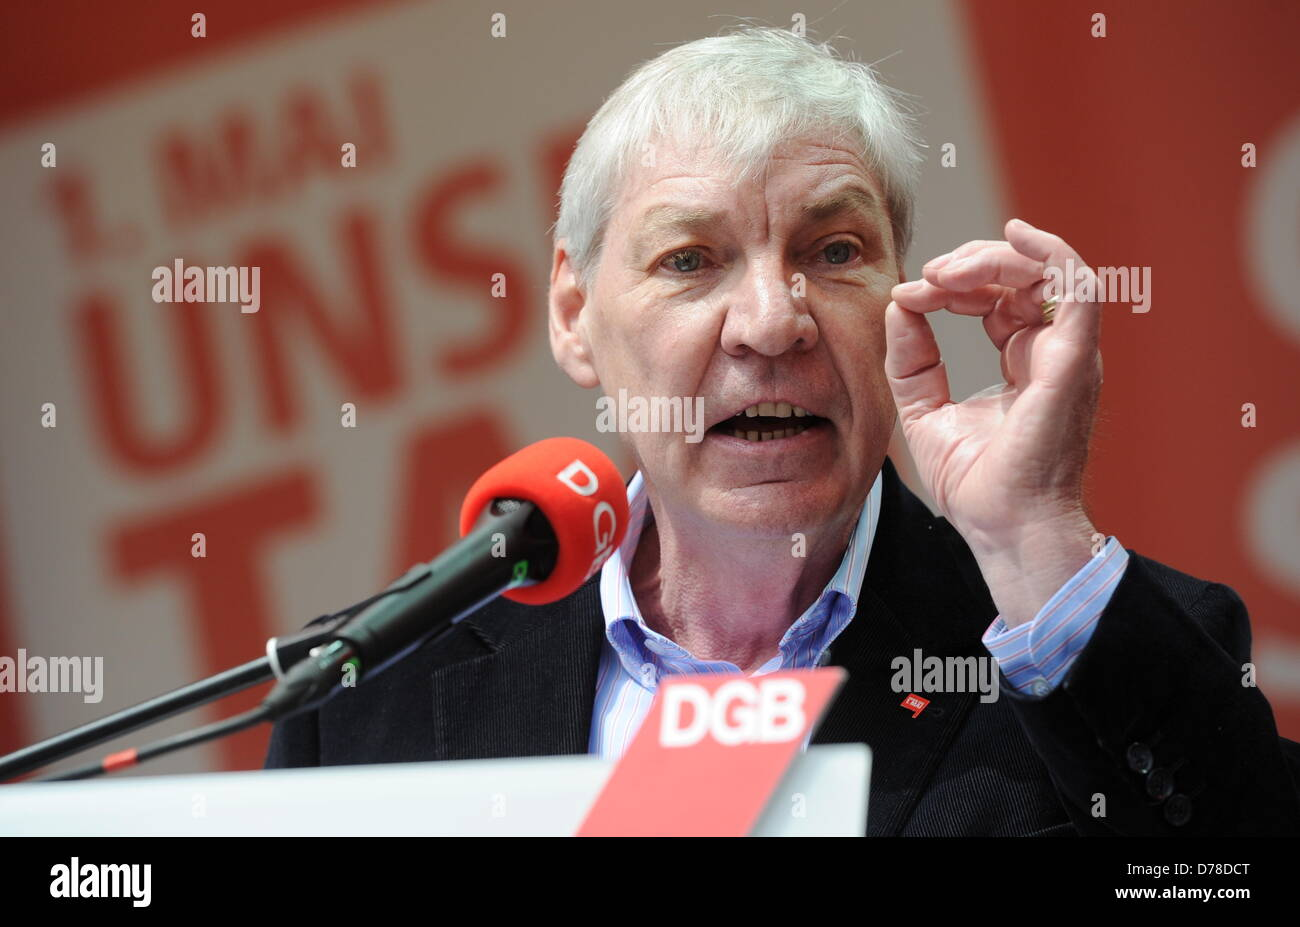 The DGB chairman Michael Sommer takes part in a union rally on Labour Day on Marienplatz in Munich, Germany, 01 - Stock Image